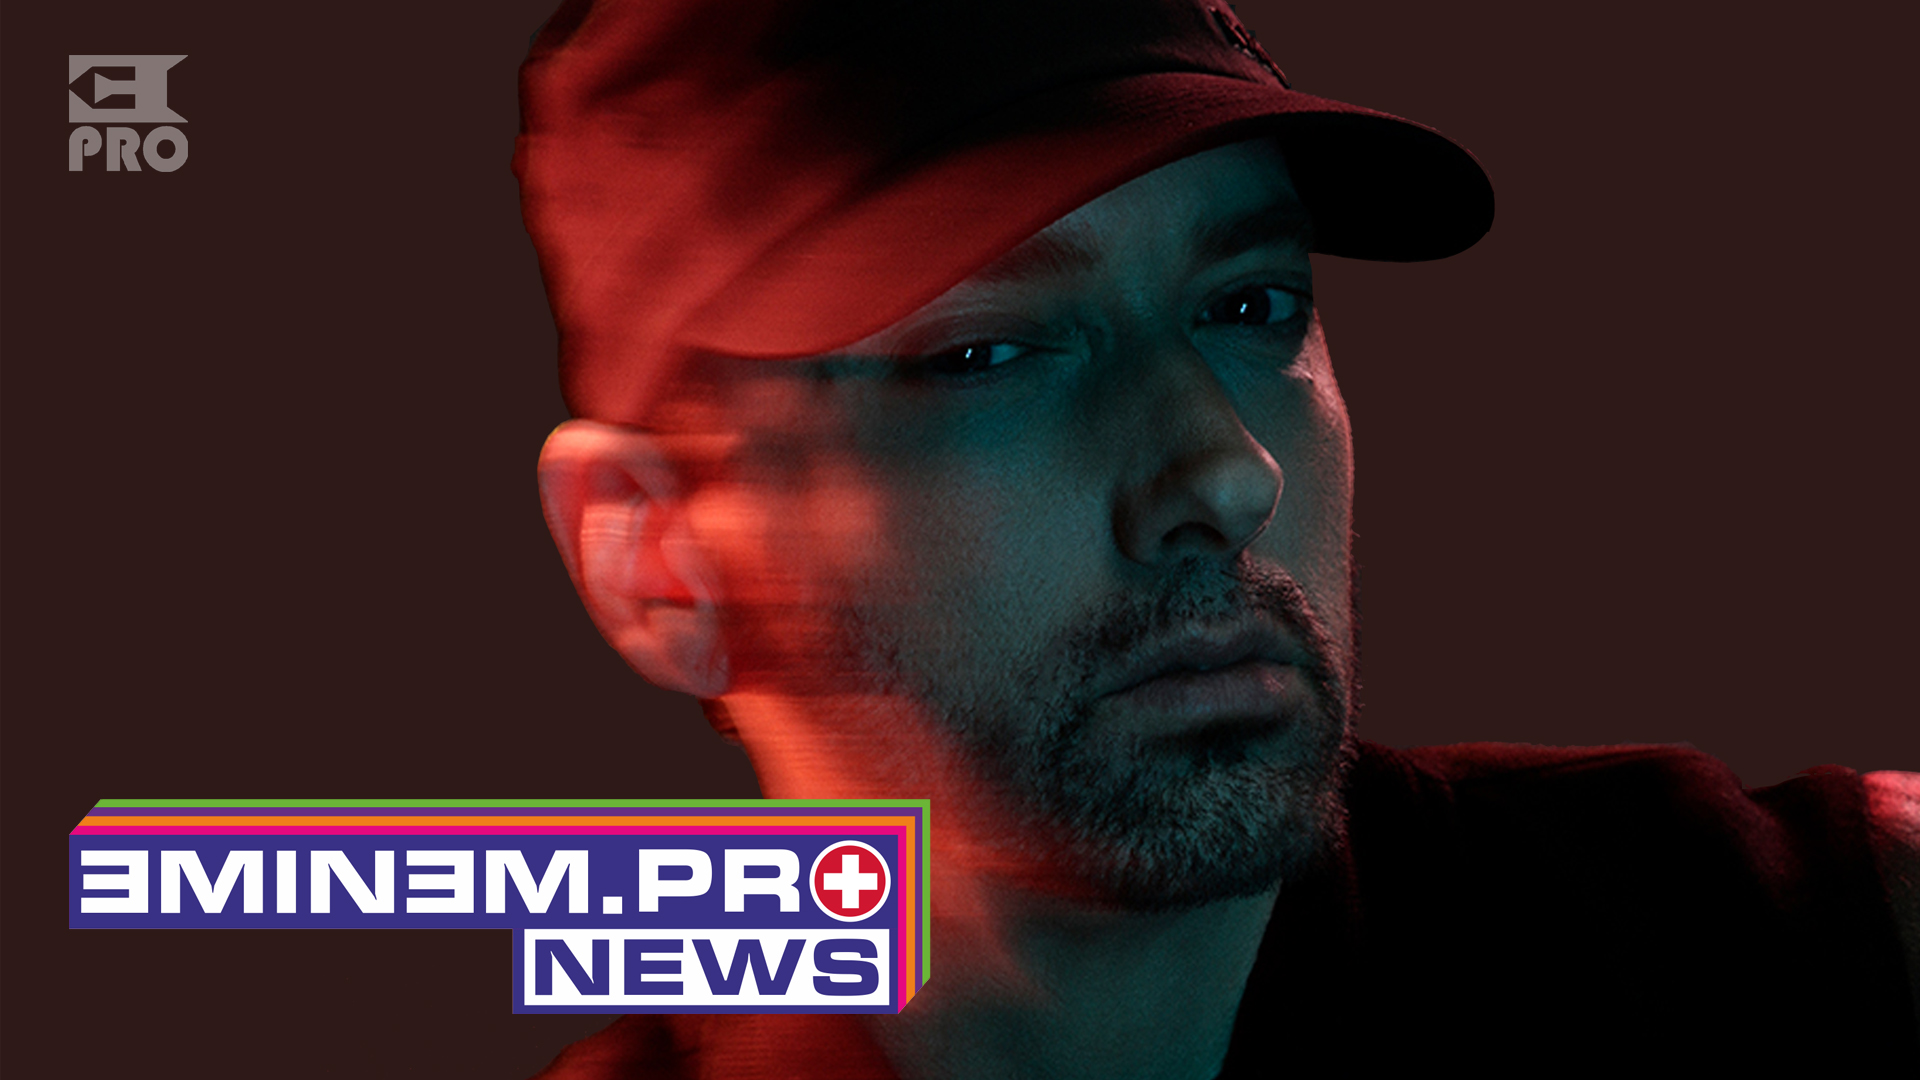 ePro News 42: All the most interesting moments of debut week of Eminem's